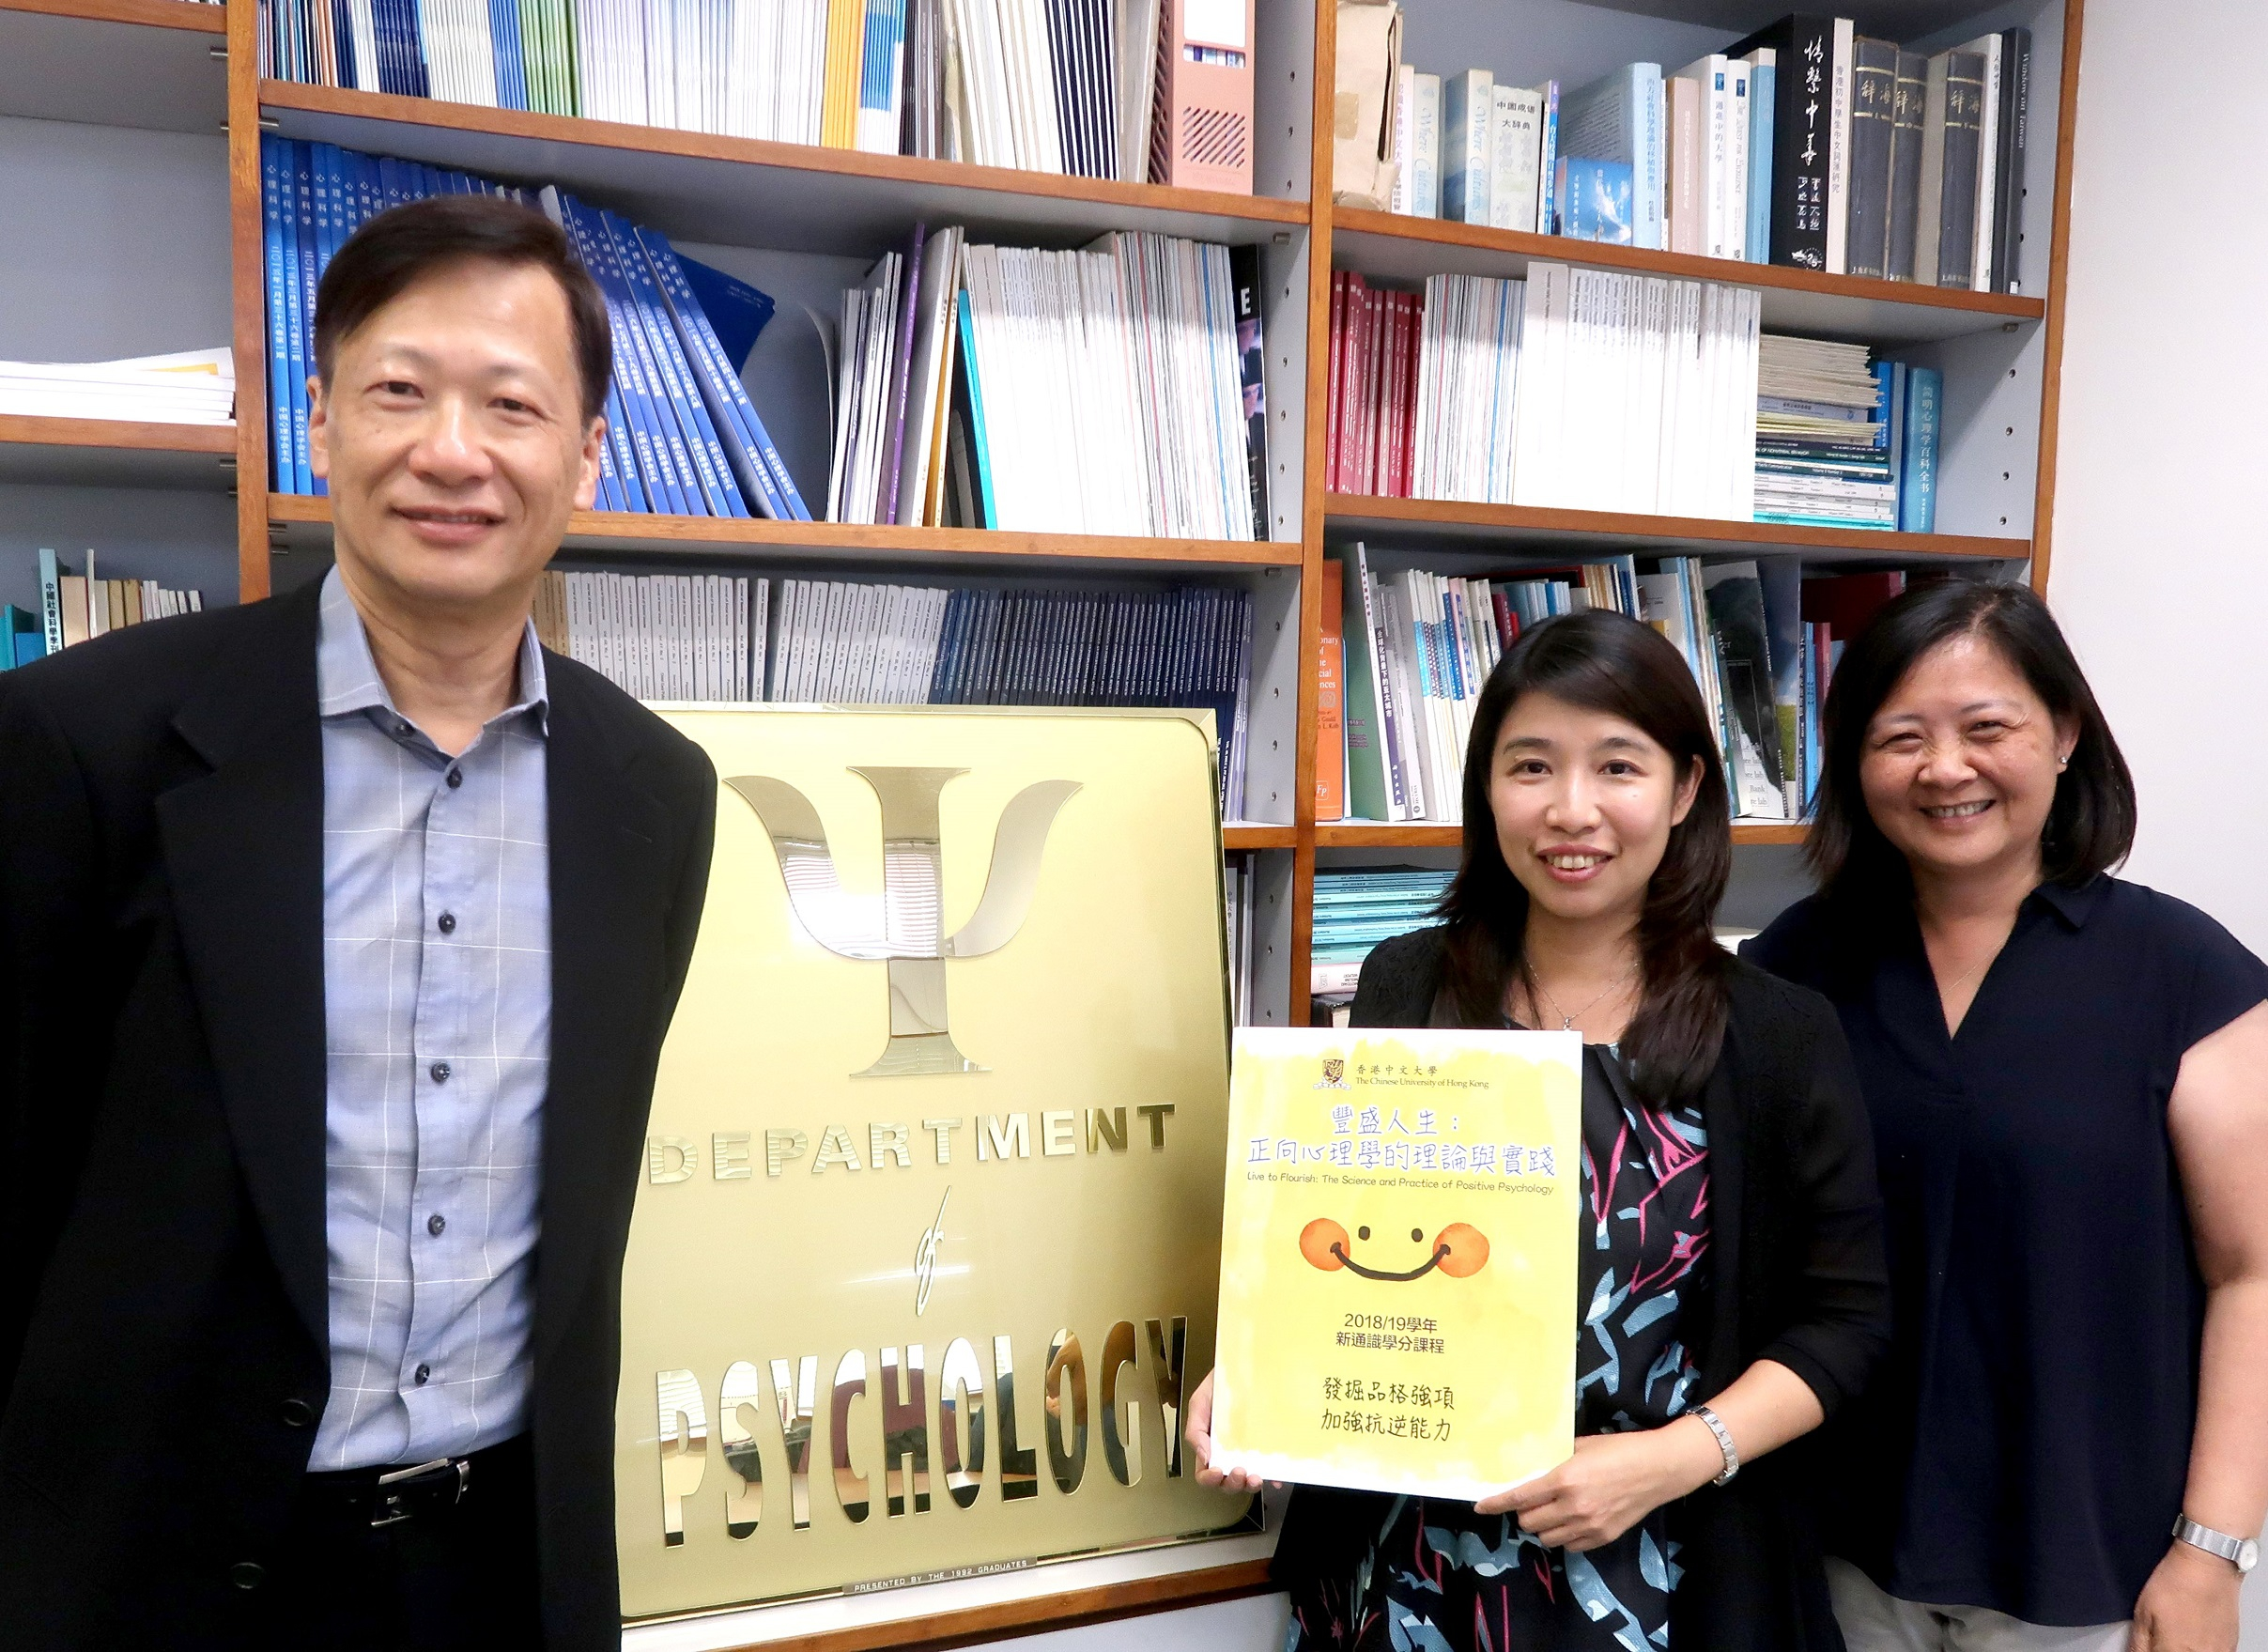 (From Left) Prof. Patrick W.L. Leung, Professor of the Department of Psychology, Ms Anita Lee and Ms Debbie Pong, Clinical Psychologists.